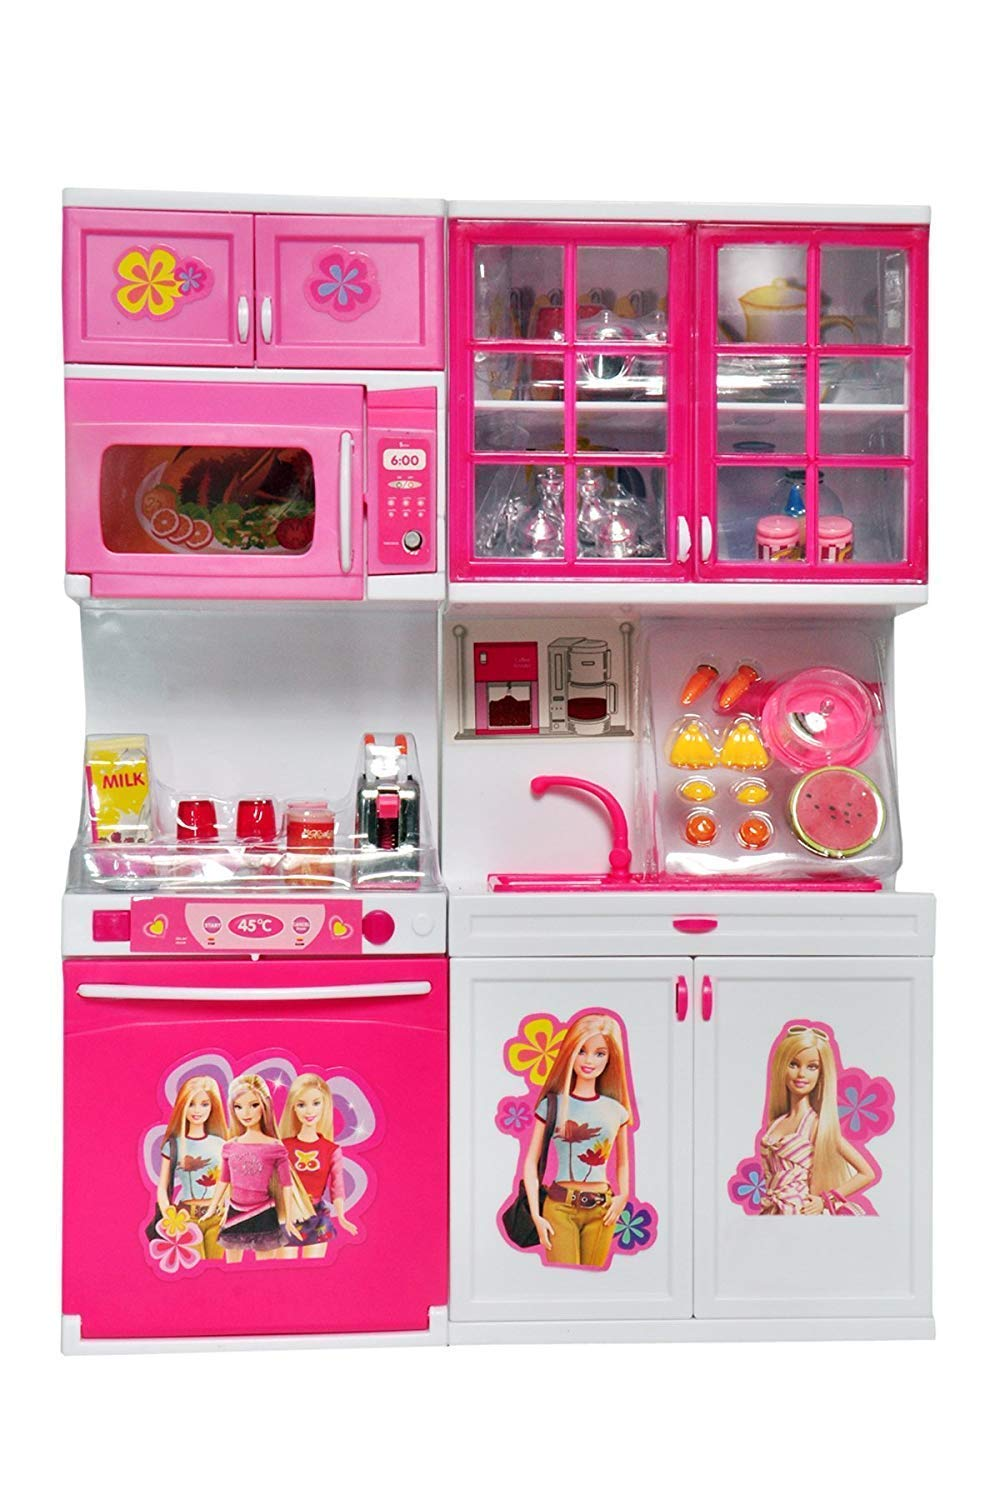 Buy Big Folk Barbie Kids Kitchen Play Set For Girls Toys With Lights And Music 2 Fold Kids Toys For Girls Online At Low Prices In India Amazon In